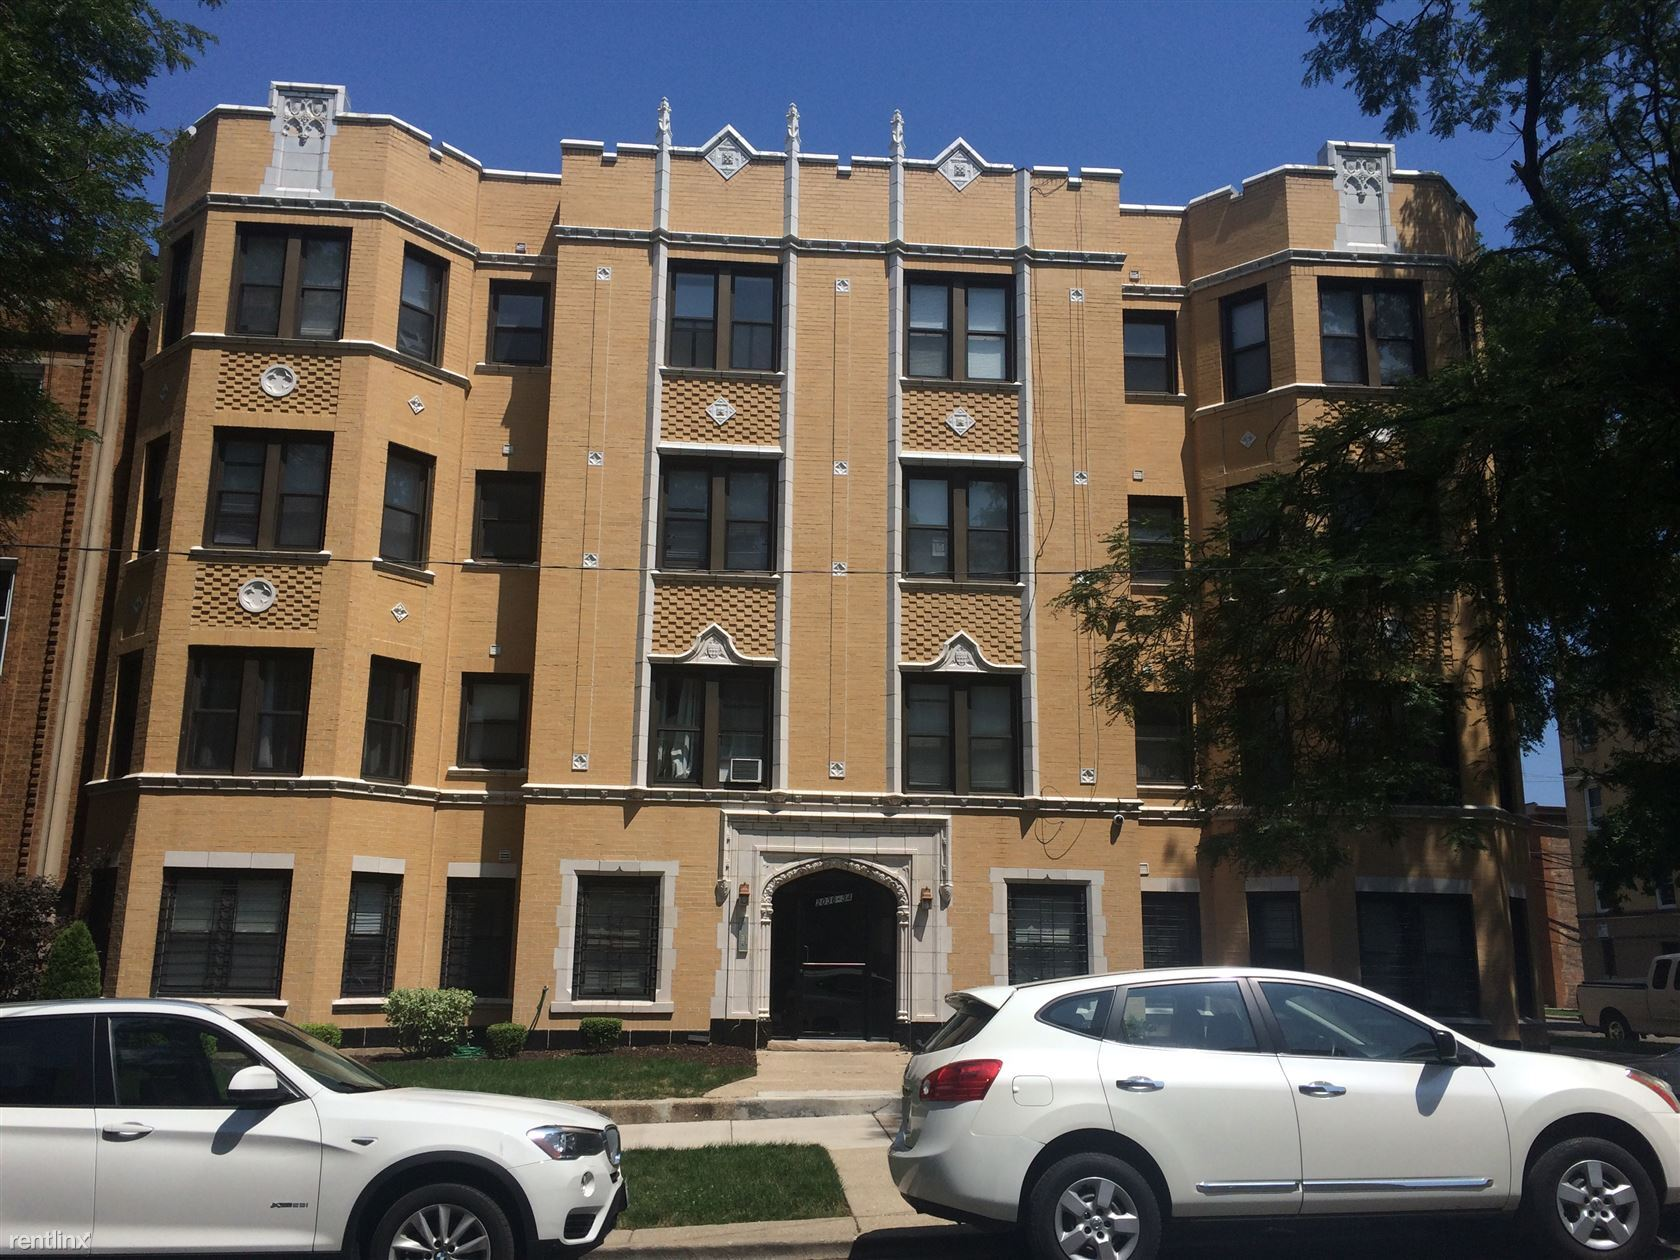 2035 W Arthur Ave at Chicago State University (Chicago State) | Uloop